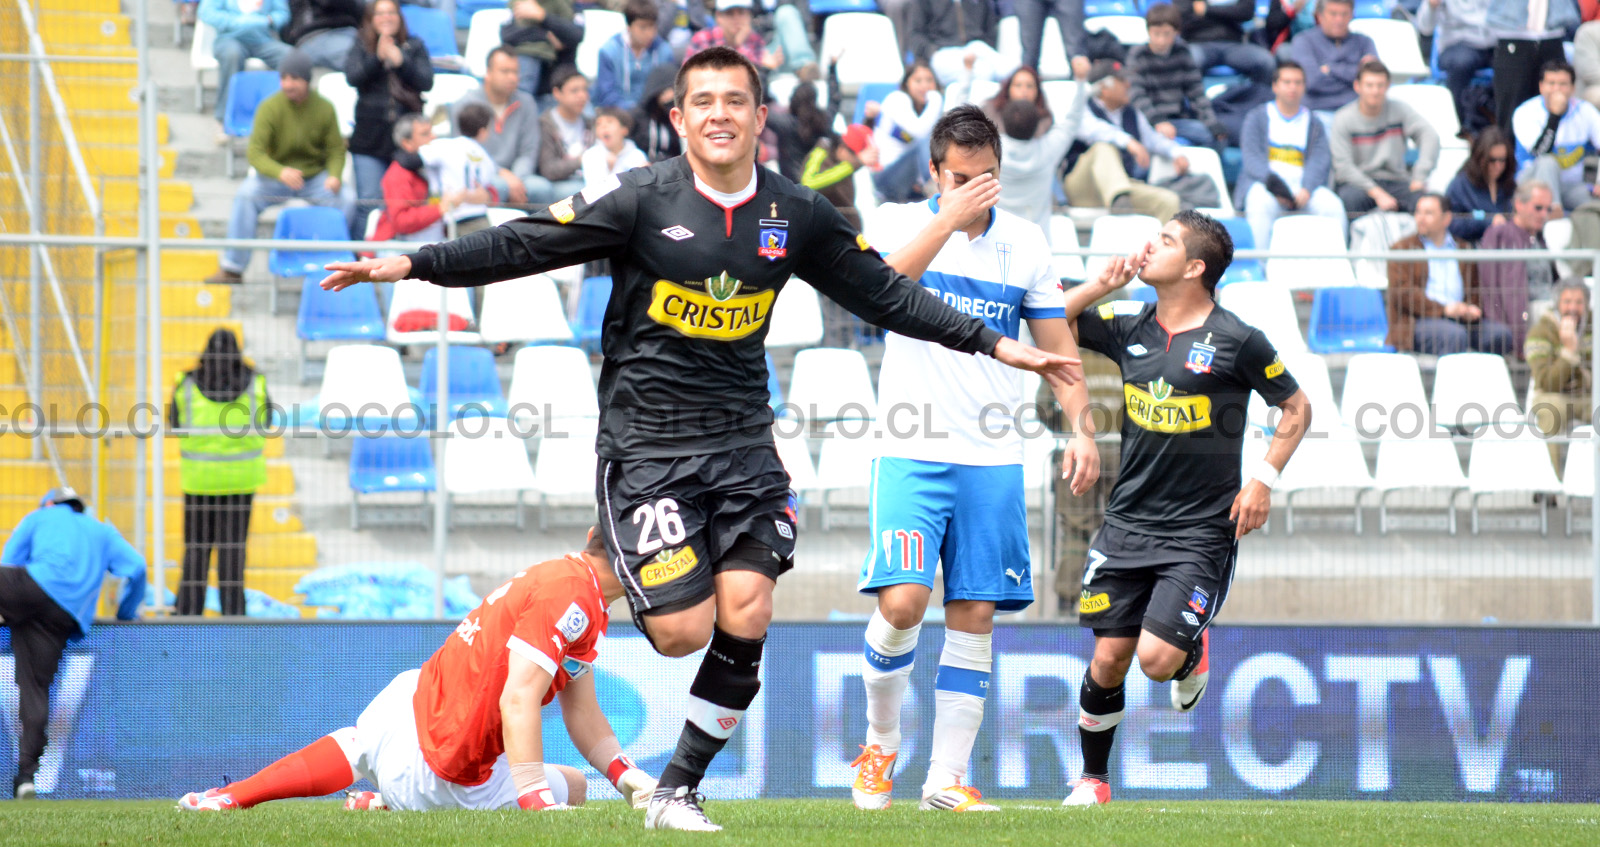 Colo-Colo vs UC, Chilean National Tournament 2013